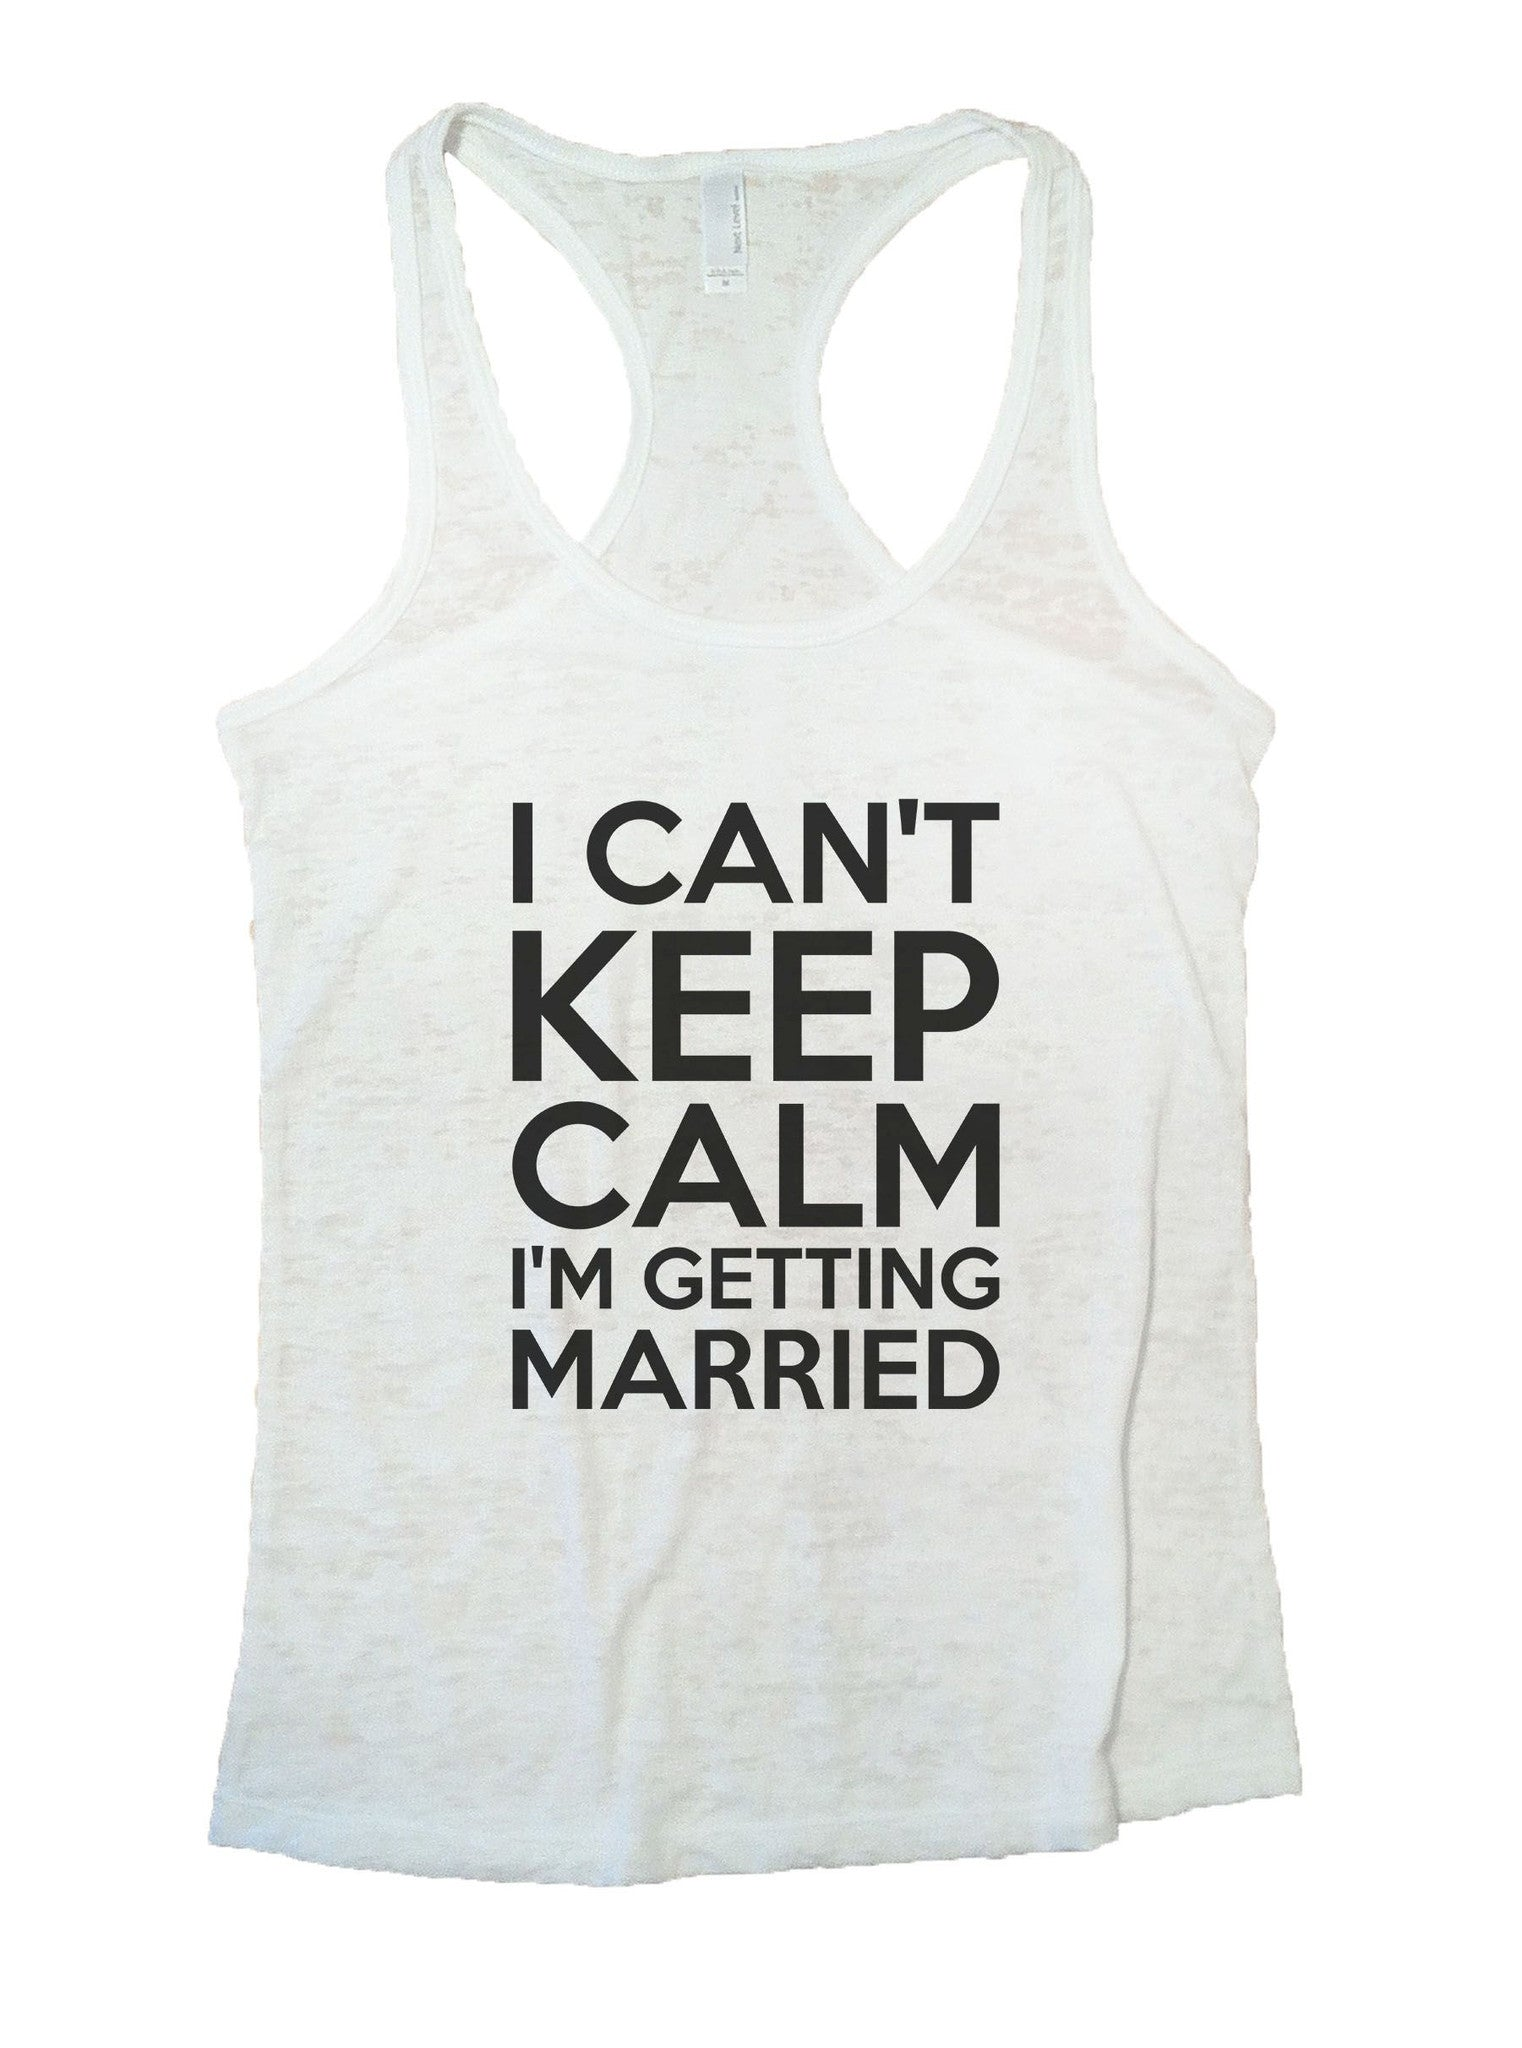 I Can't Keep Calm I'm Getting Married Burnout Tank Top By BurnoutTankTops.com - 887 - Funny Shirts Tank Tops Burnouts and Triblends  - 6